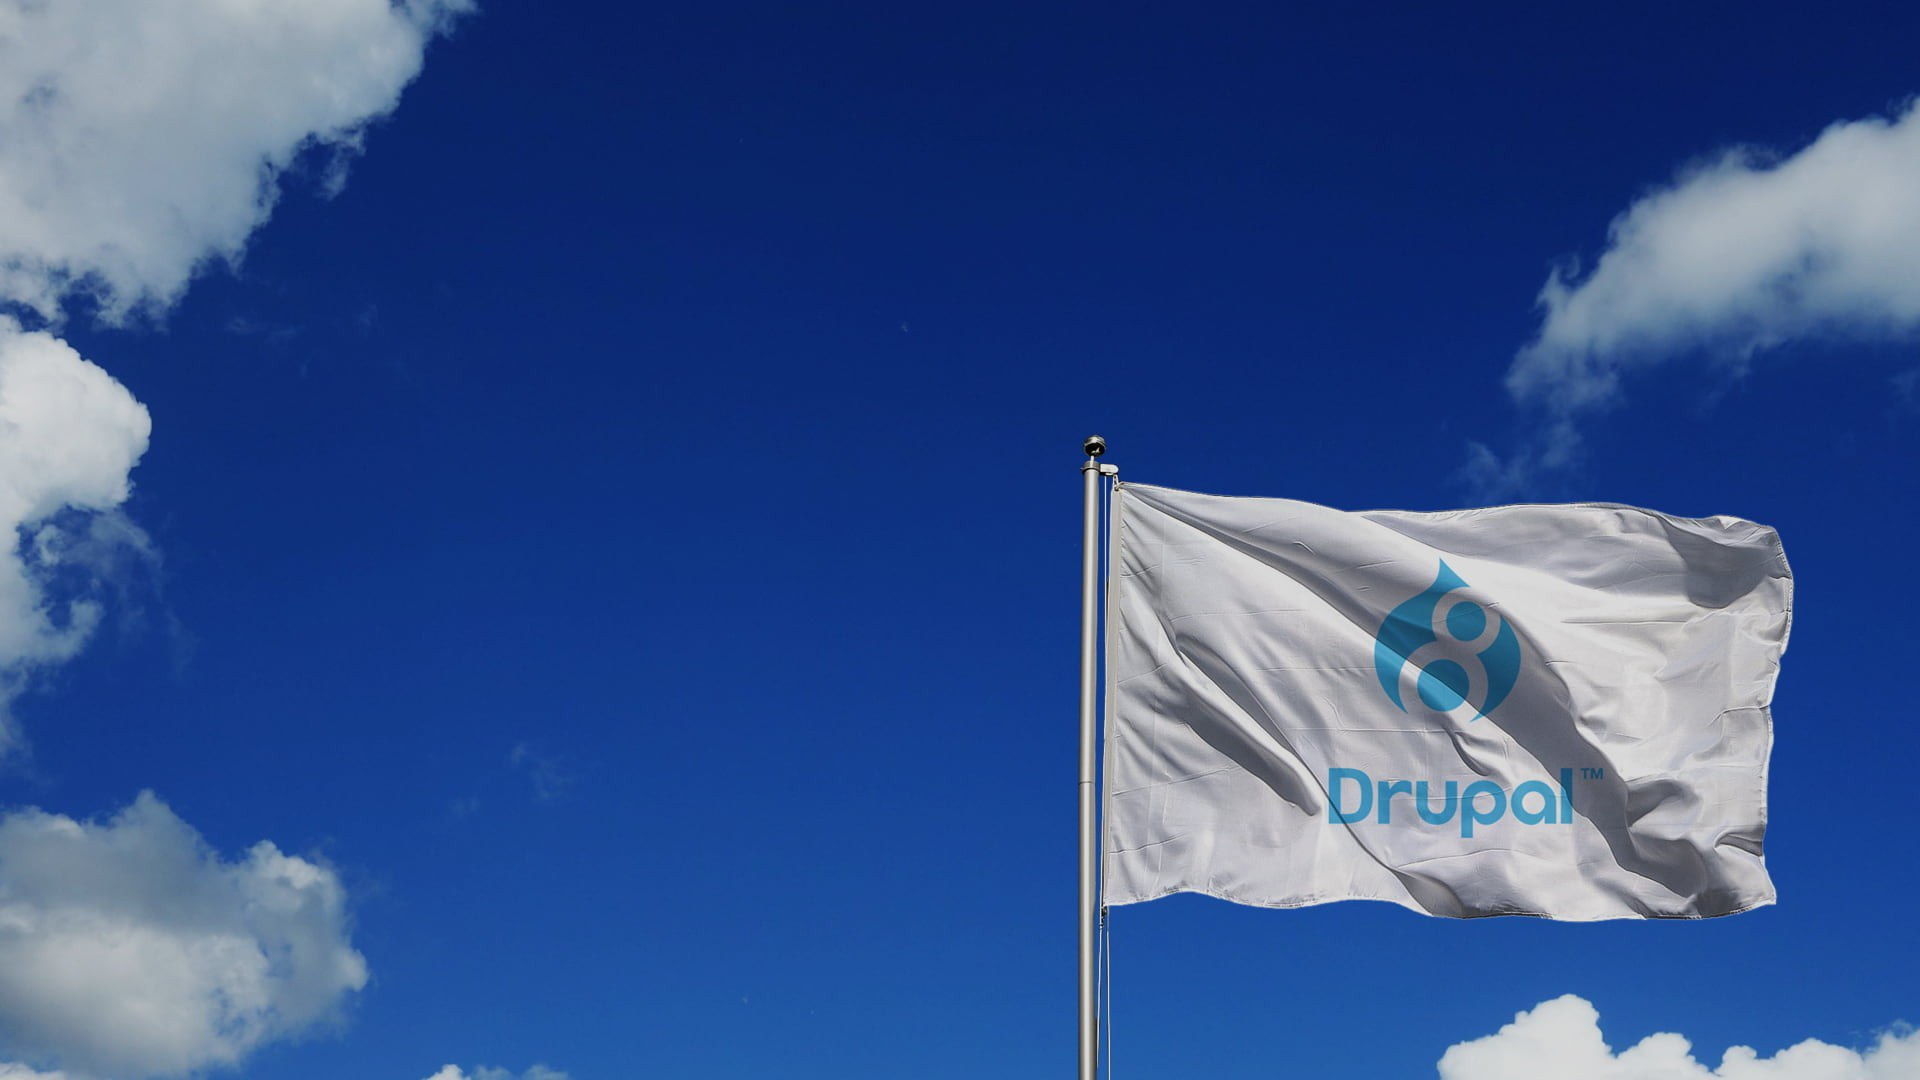 Drupal 8 Stable for Production?